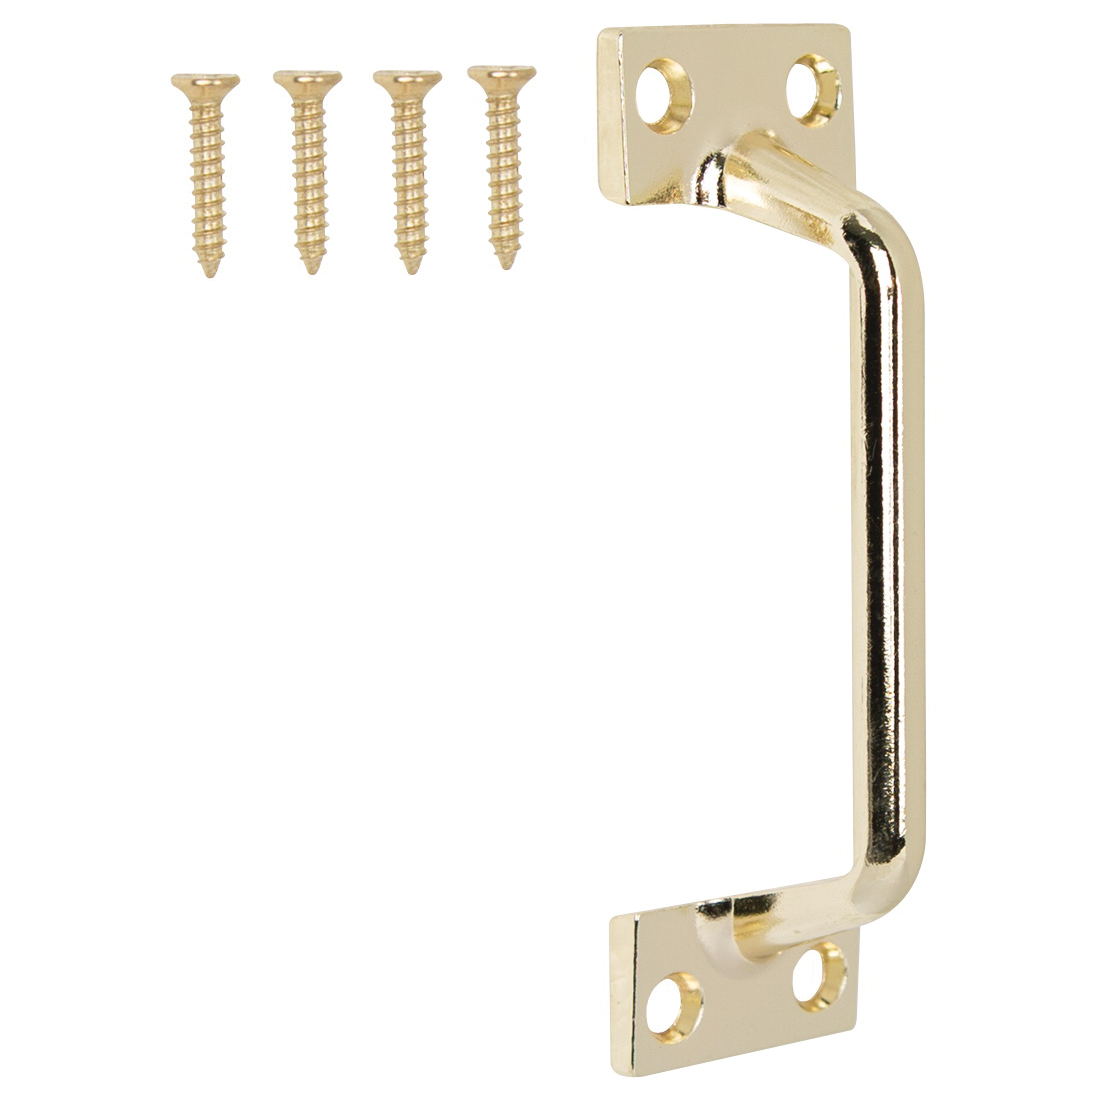 Picture of ProSource 20902BBB-PS Sash Lift, 3-7/8 in L Handle, Die-Cast Zinc, Polished Brass